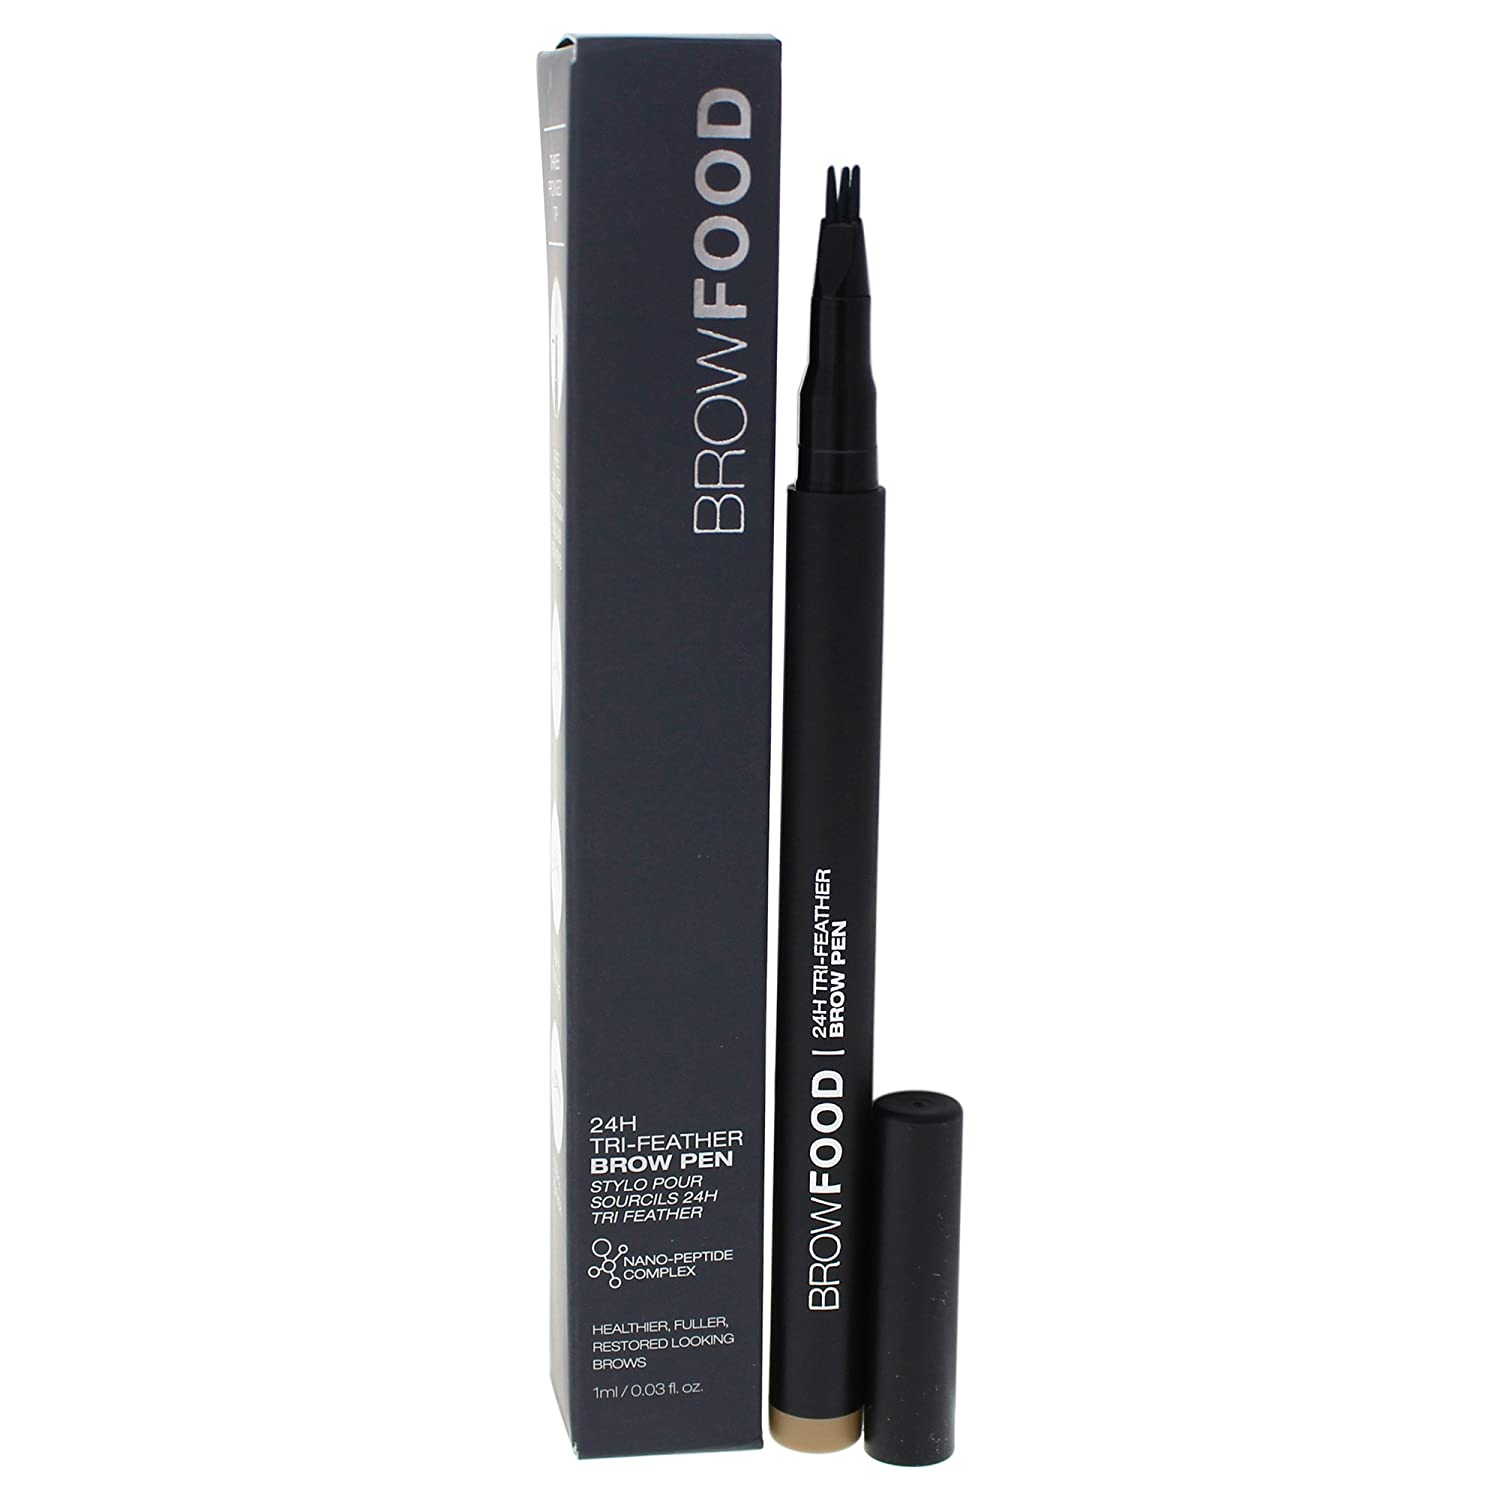 BrowFood 24-H Tri-Feather Brow Pen, Dark Blonde